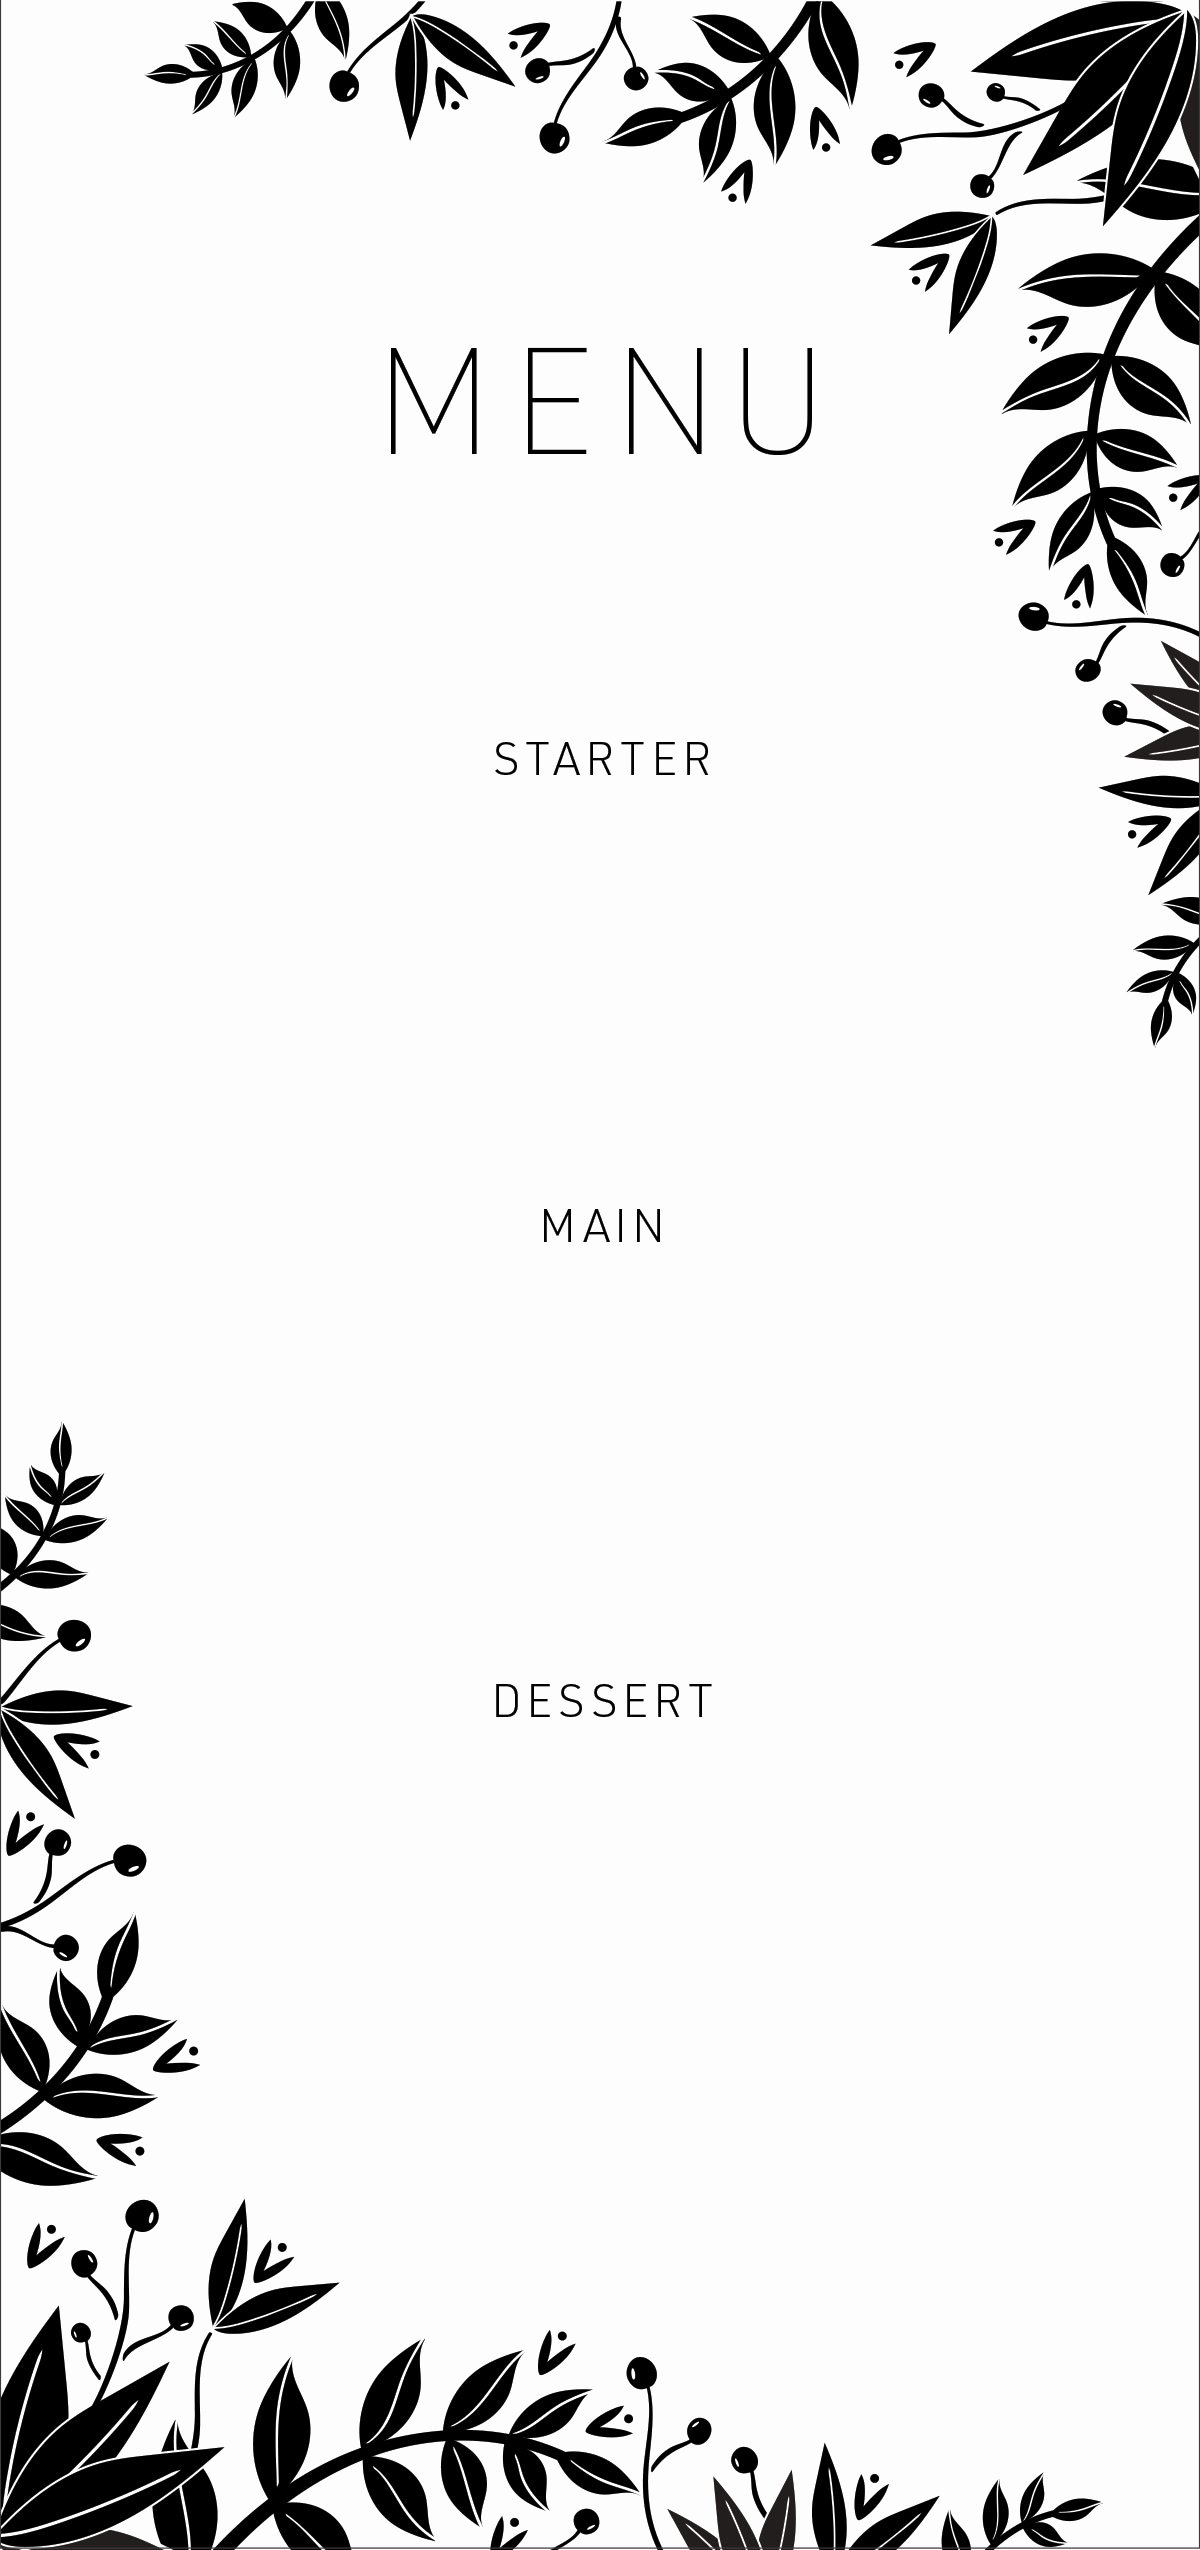 Dinner Party Menu Templates New 20 Dinner Party Ideas Free Customizable Menus